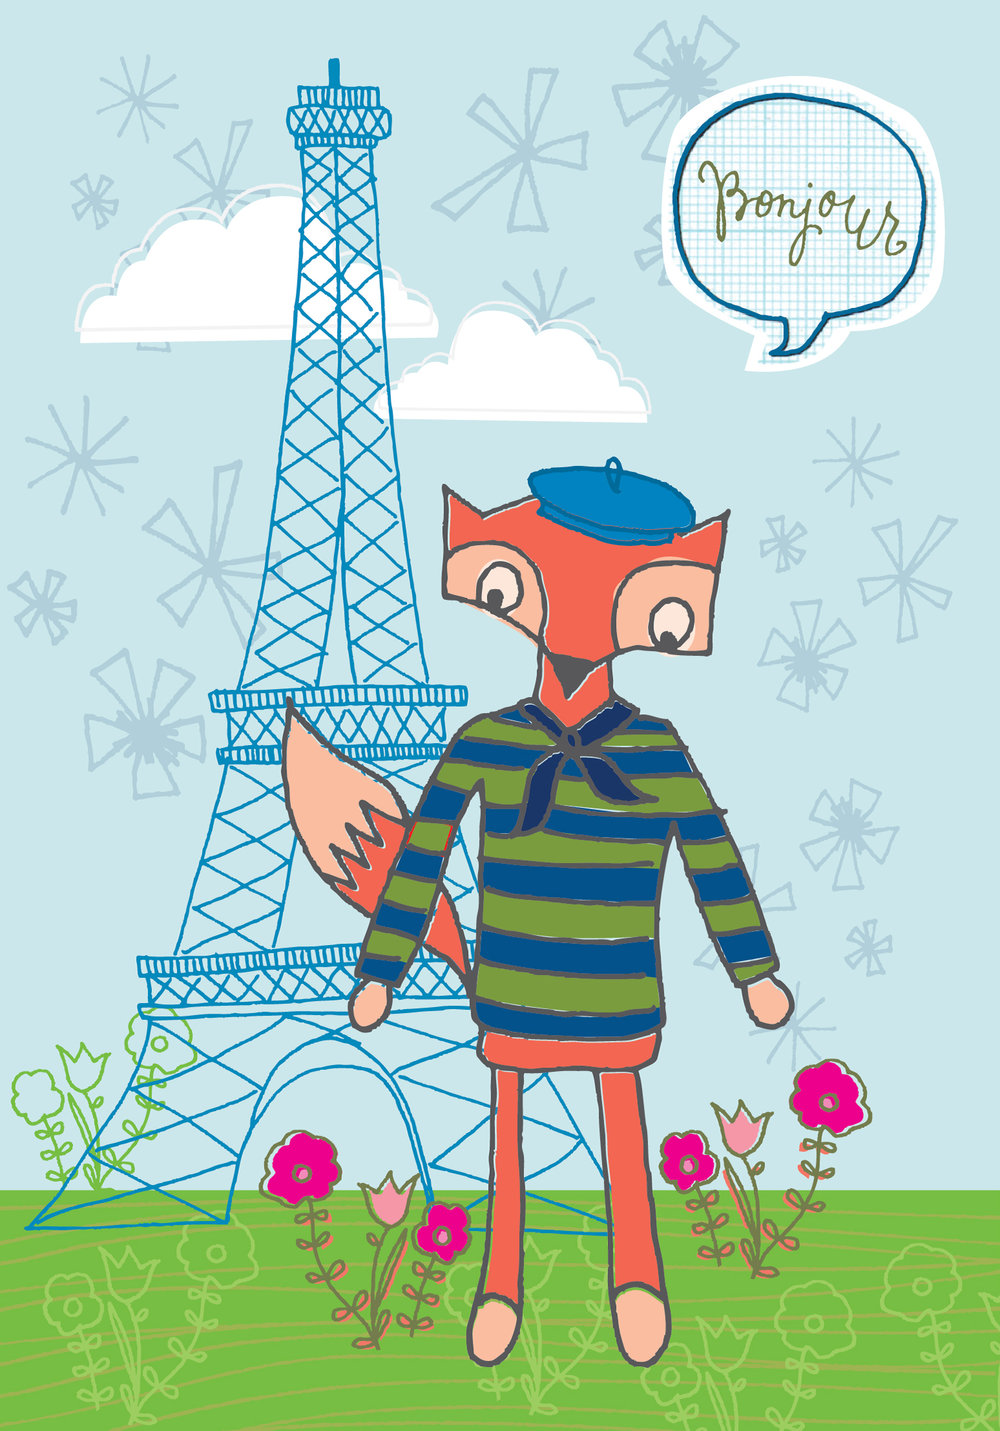 jami_darwin_fox_in_paris.jpg